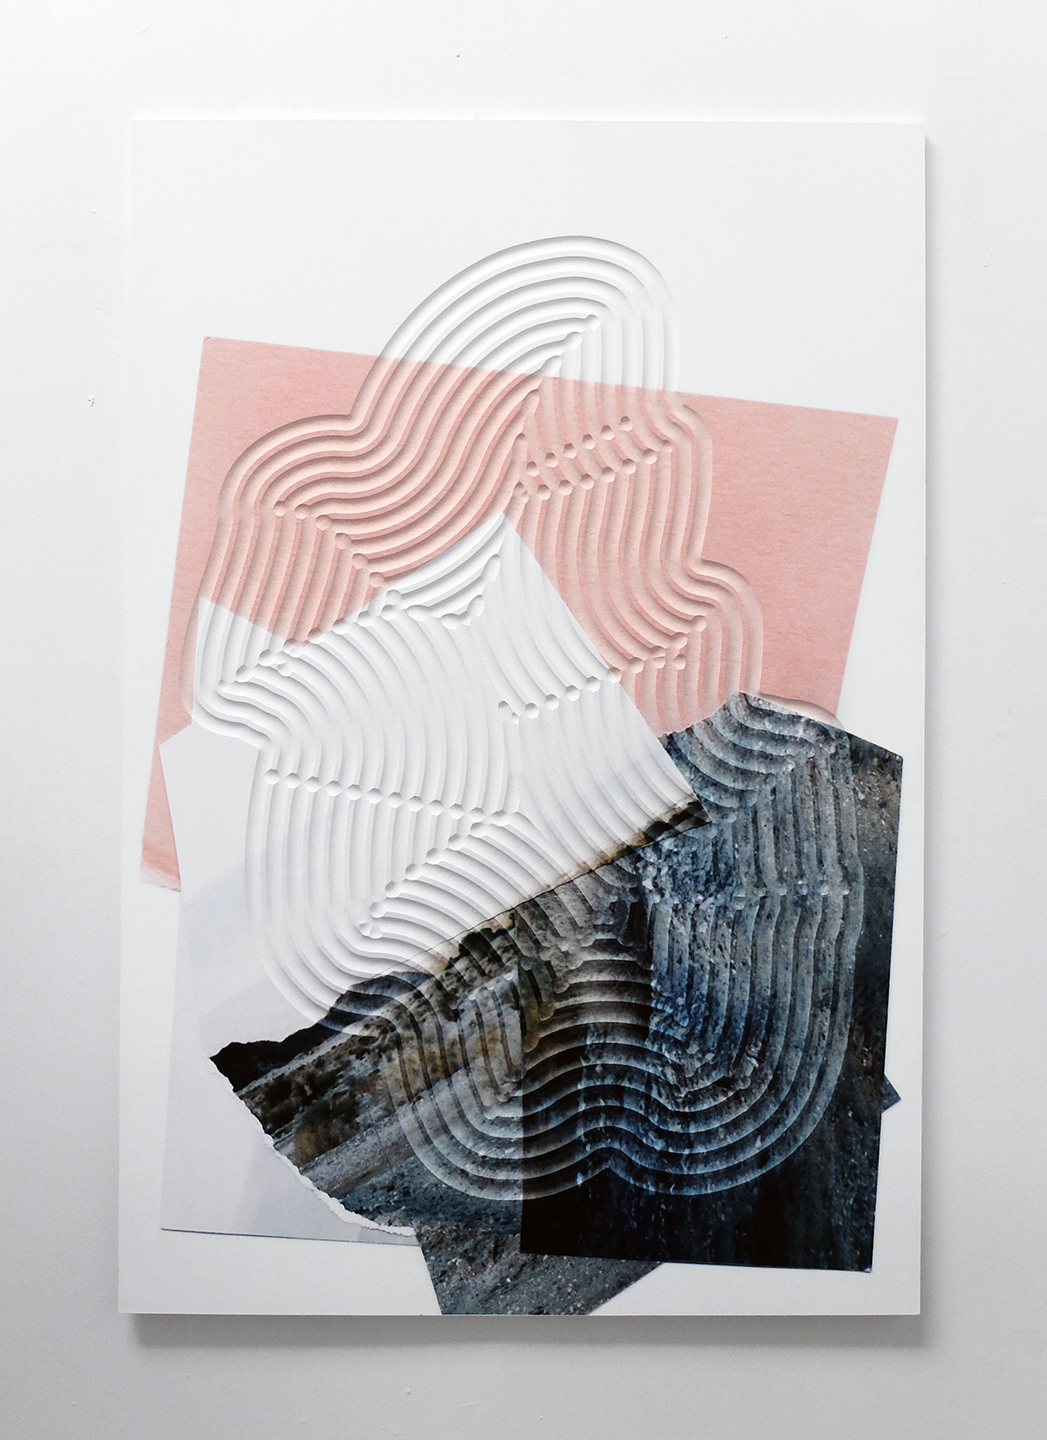 Interview with artist Kate Bonner on the Print Club Ltd. Journal